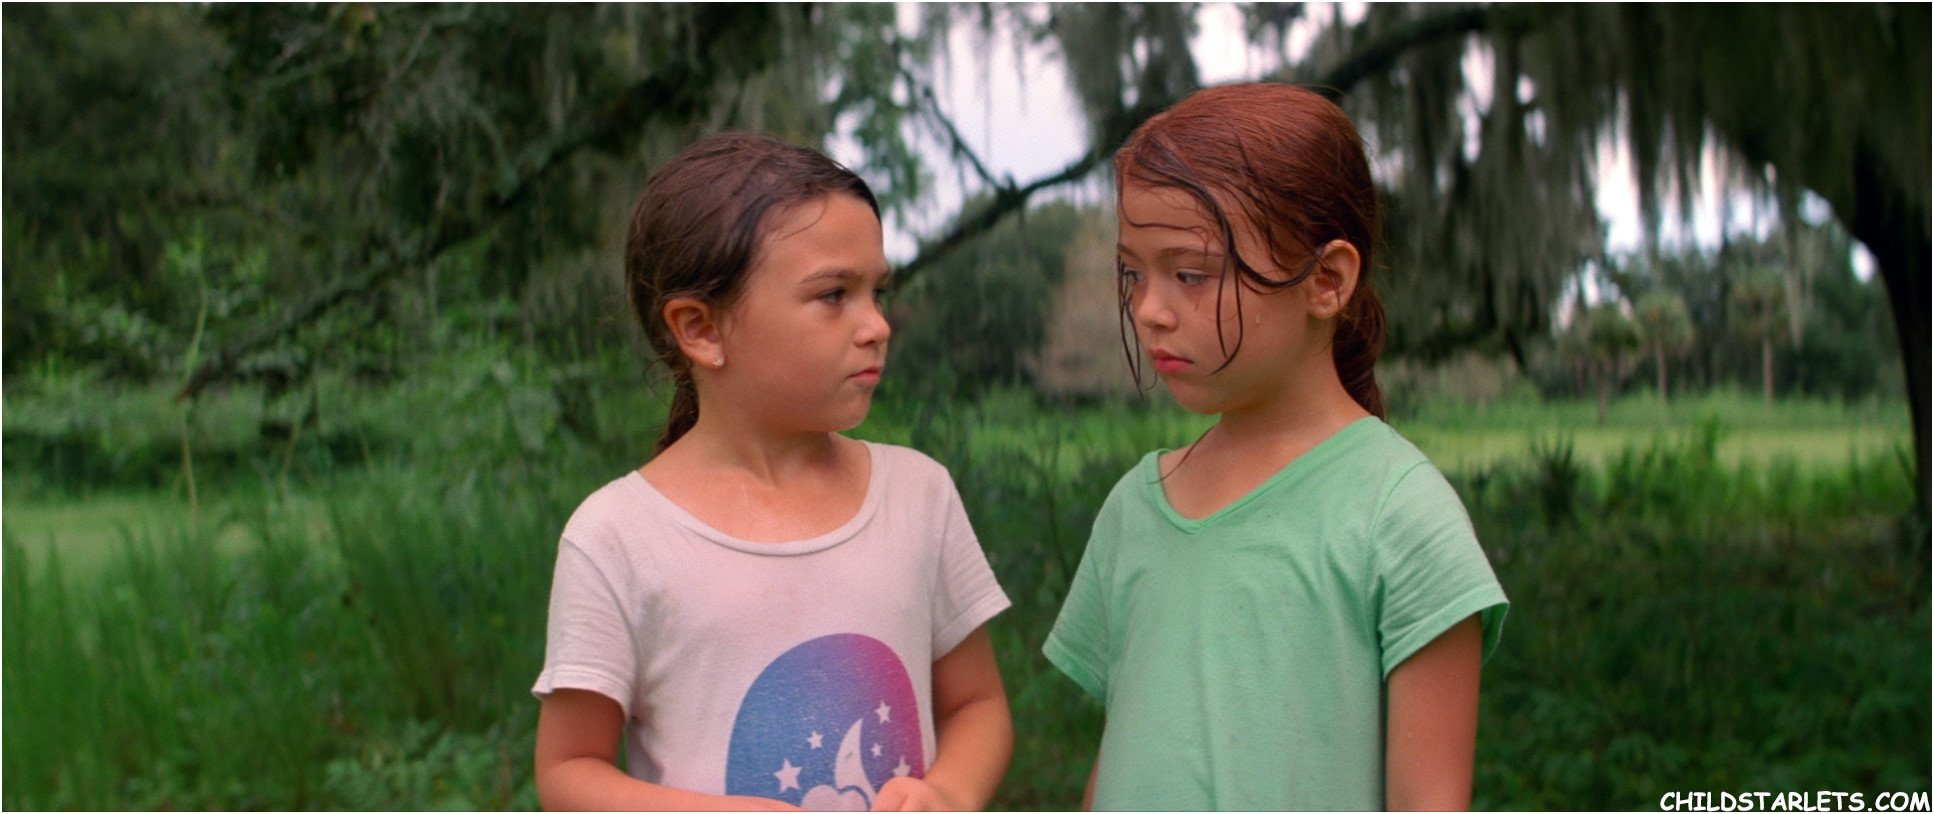 "Brooklynn Prince / Valeria Cotto ""The Florida Project"" - 2017"